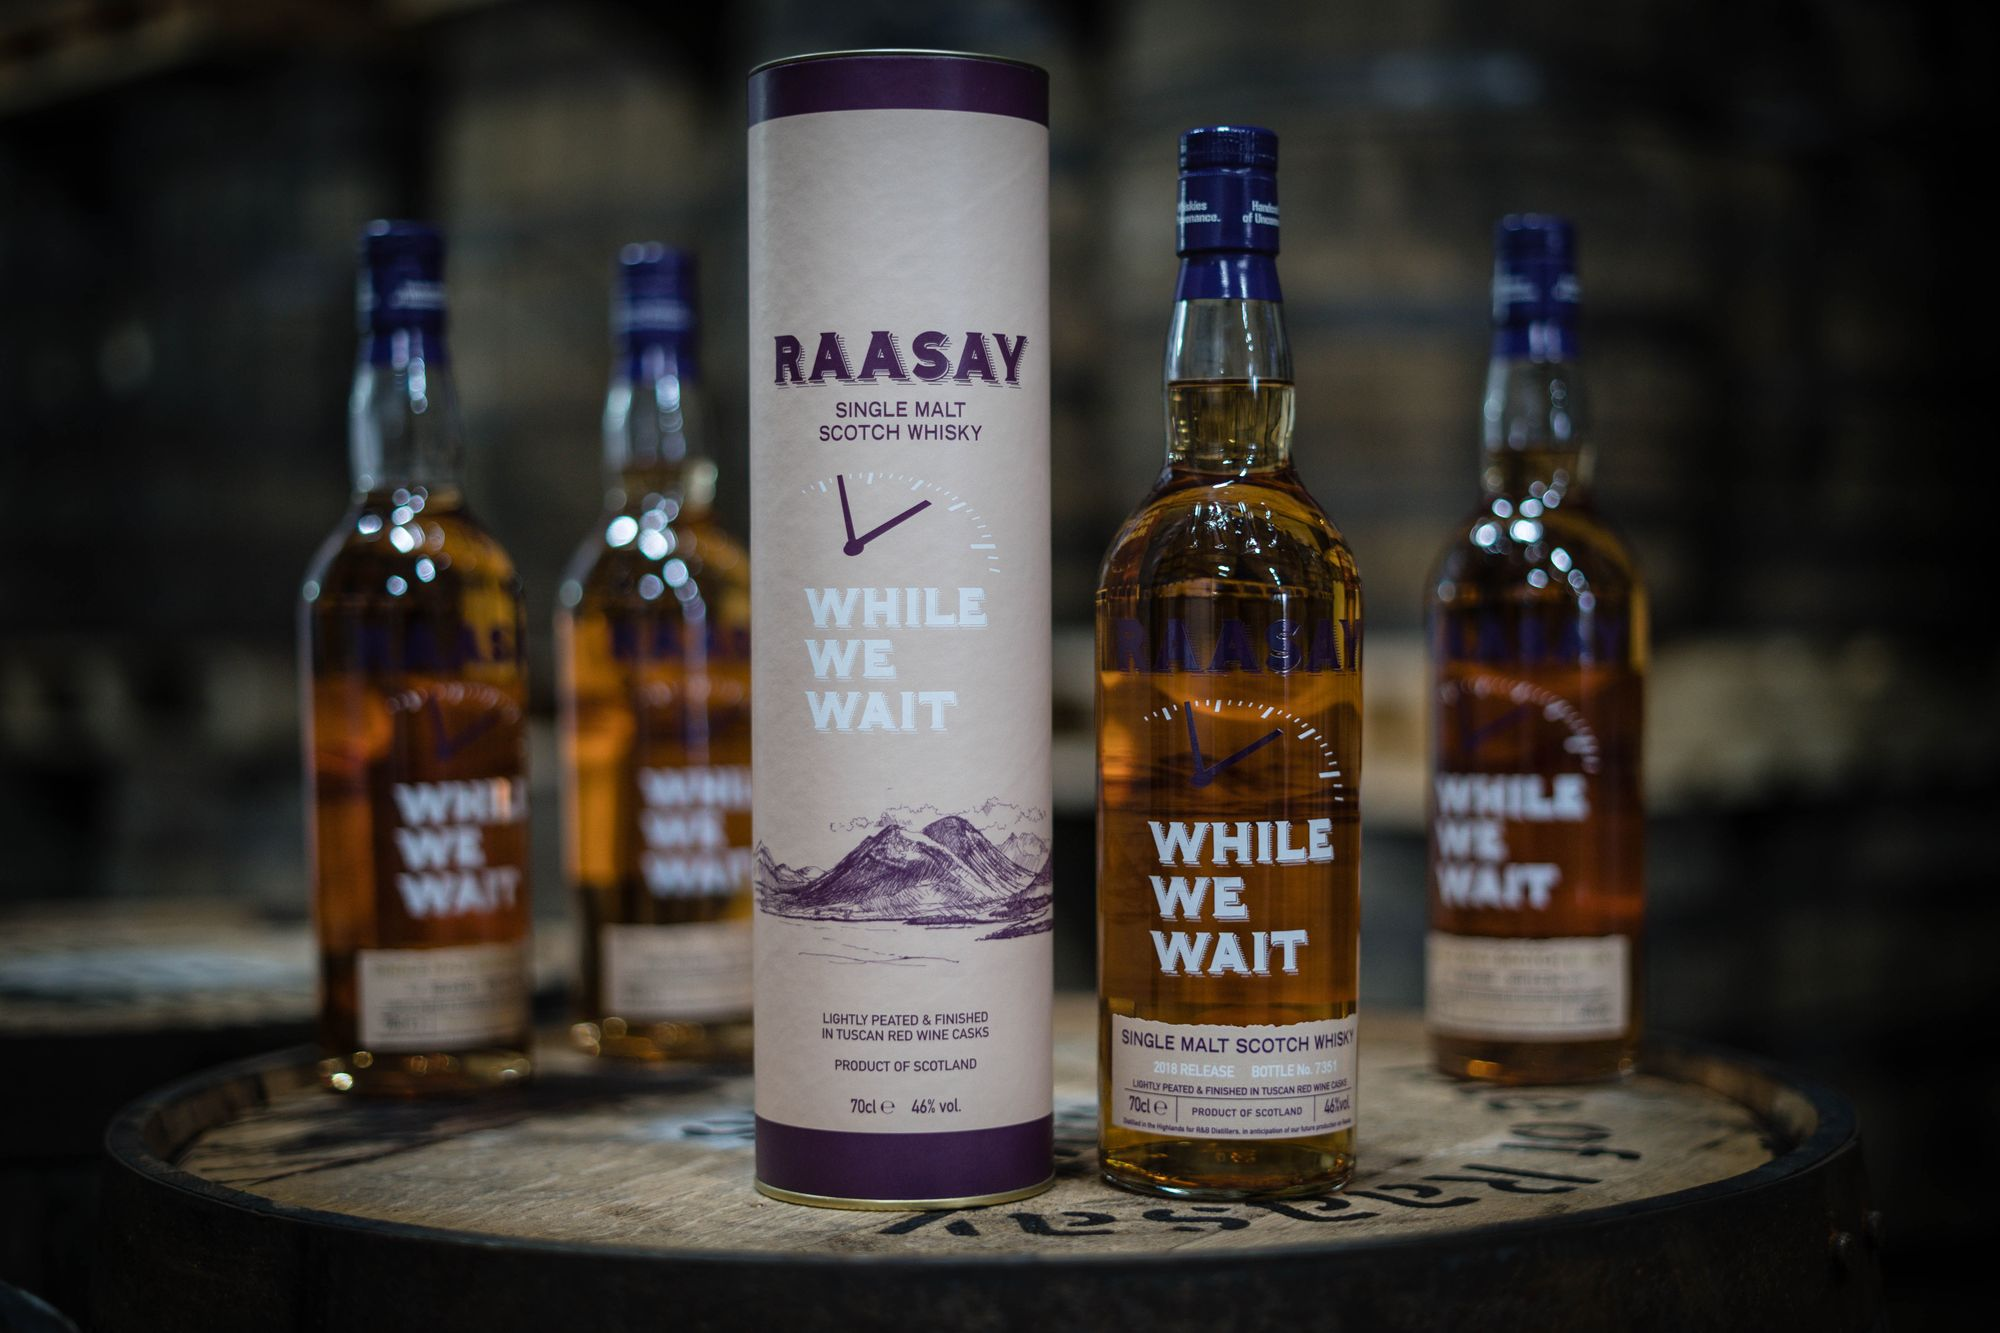 Raasay While We Wait launches in the US!